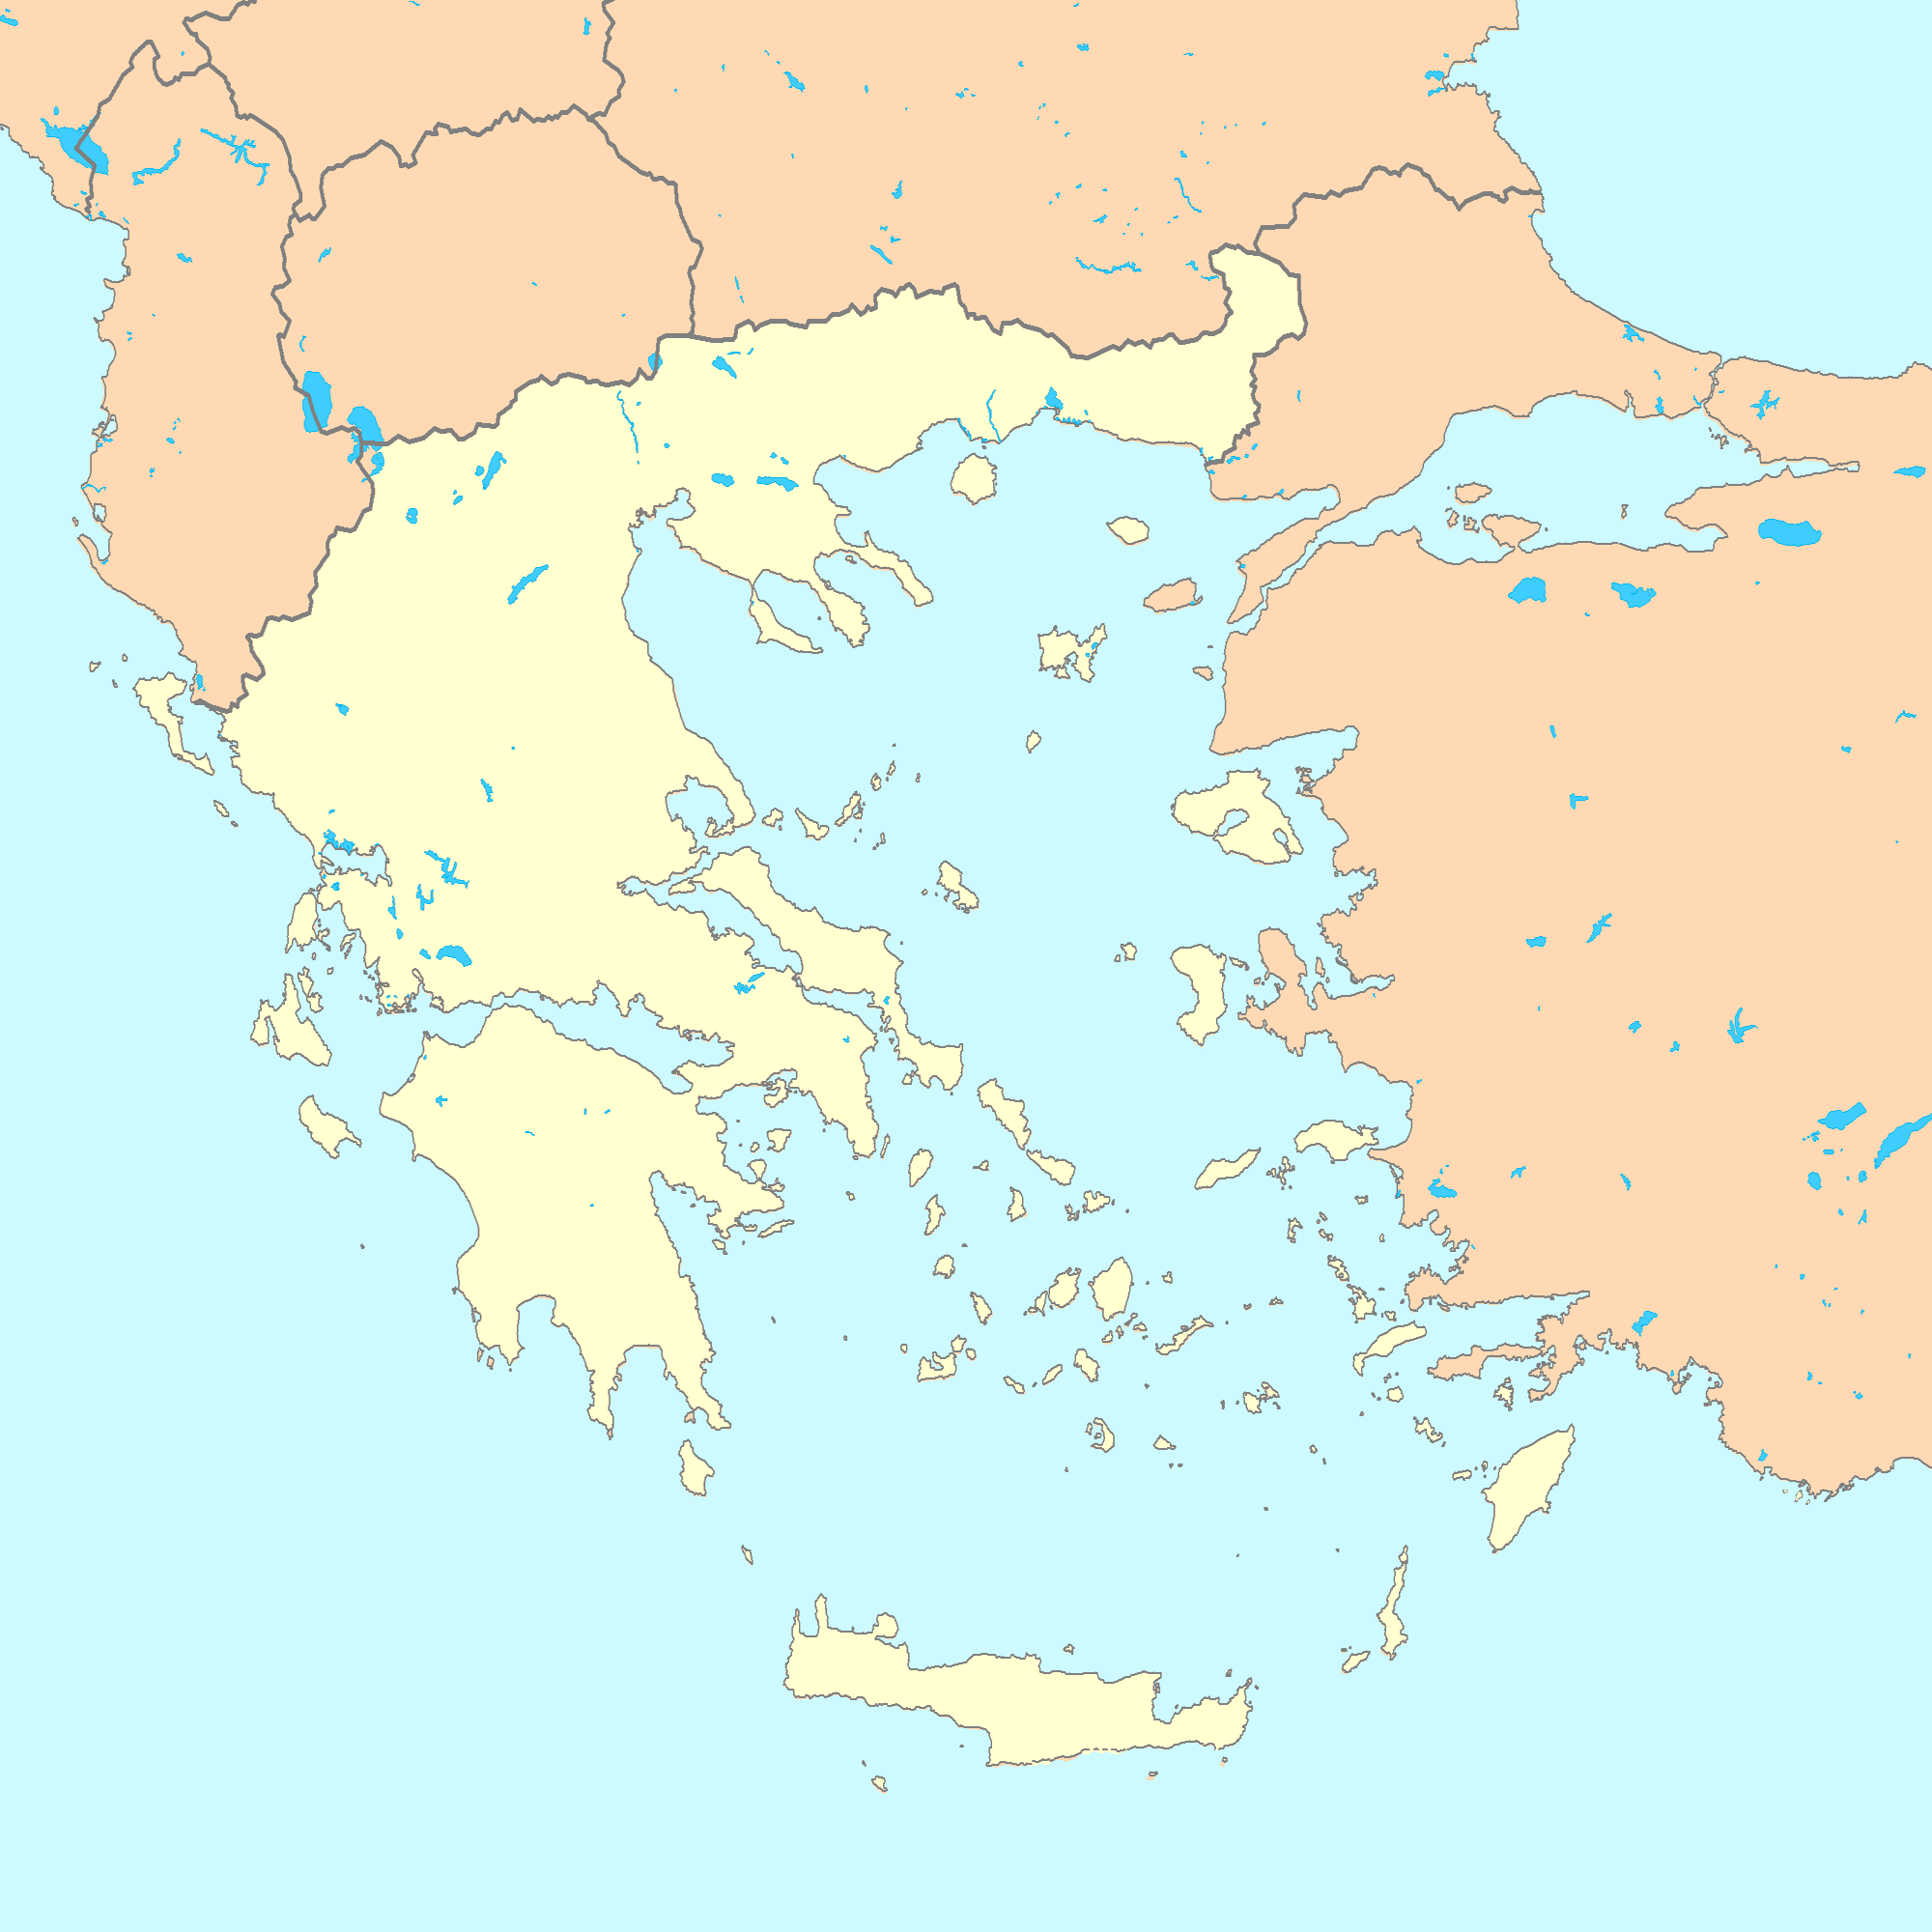 Greece Map Blank.File Greece Map Blank Png Wikimedia Commons